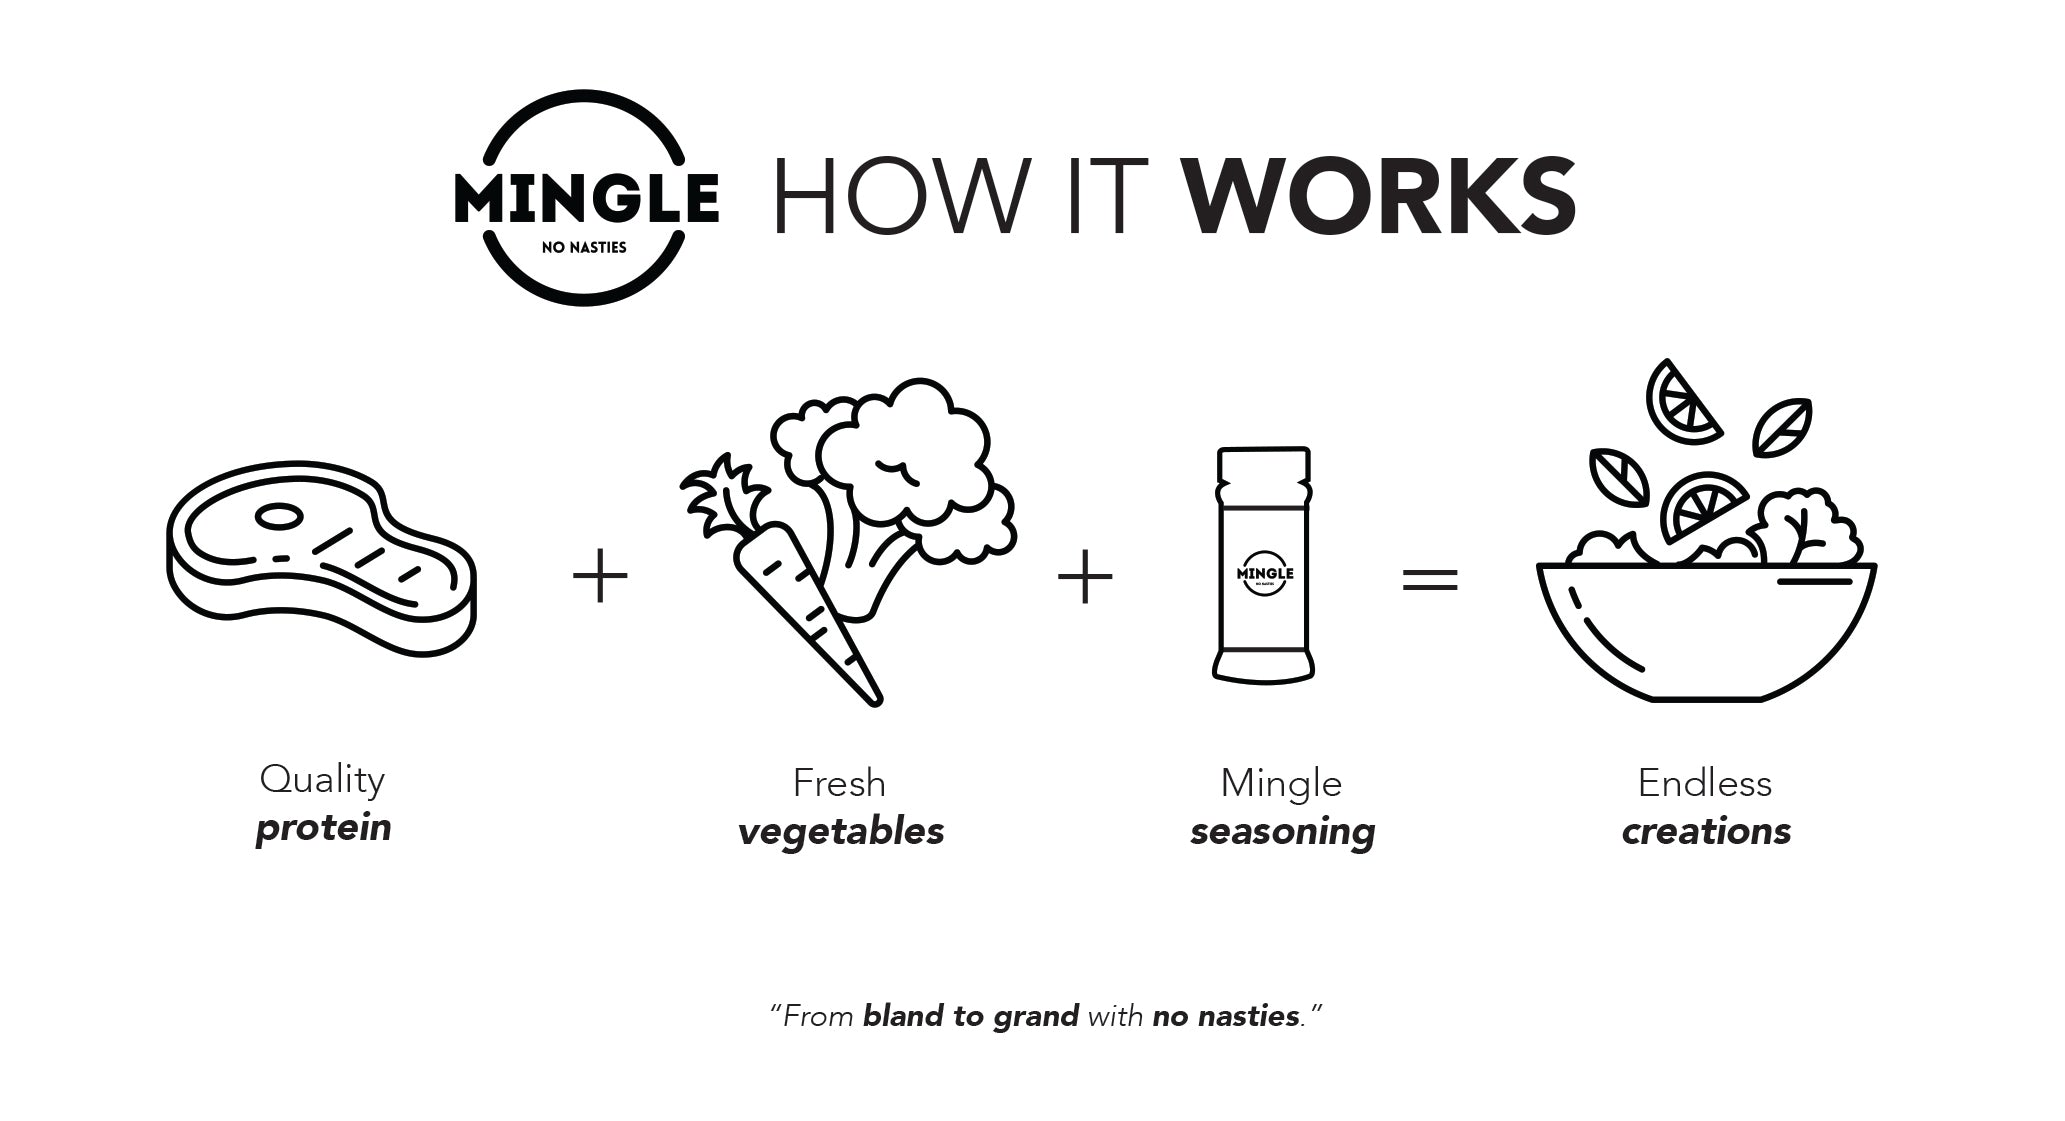 Mingle Seasoning Can Be Used As Part of a Ketogenic Diet